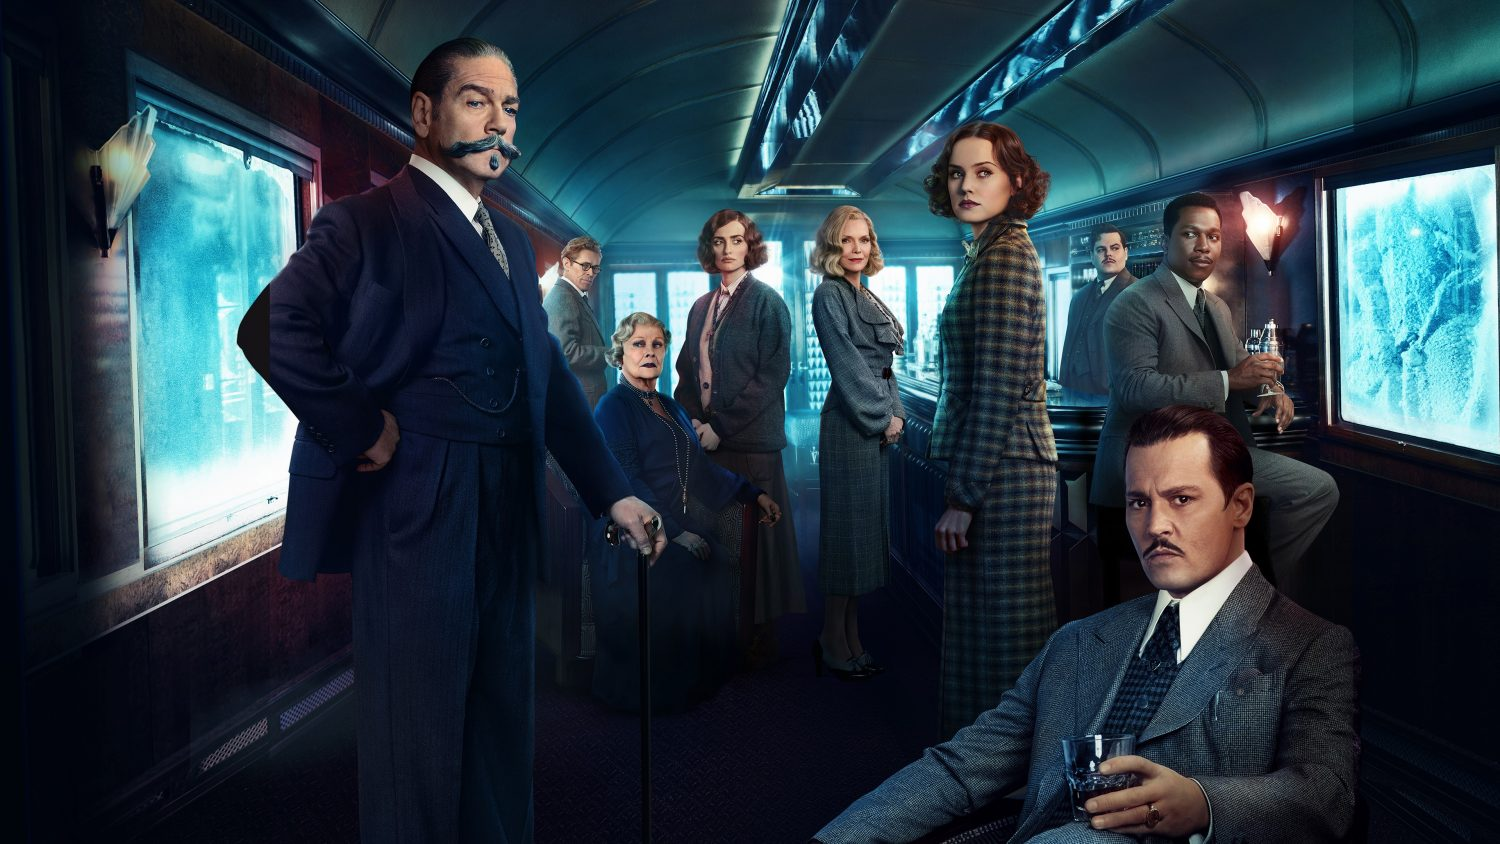 Crítica: O Assassinato no Expresso do Oriente (Murder on The Orient Express, EUA, 2017)